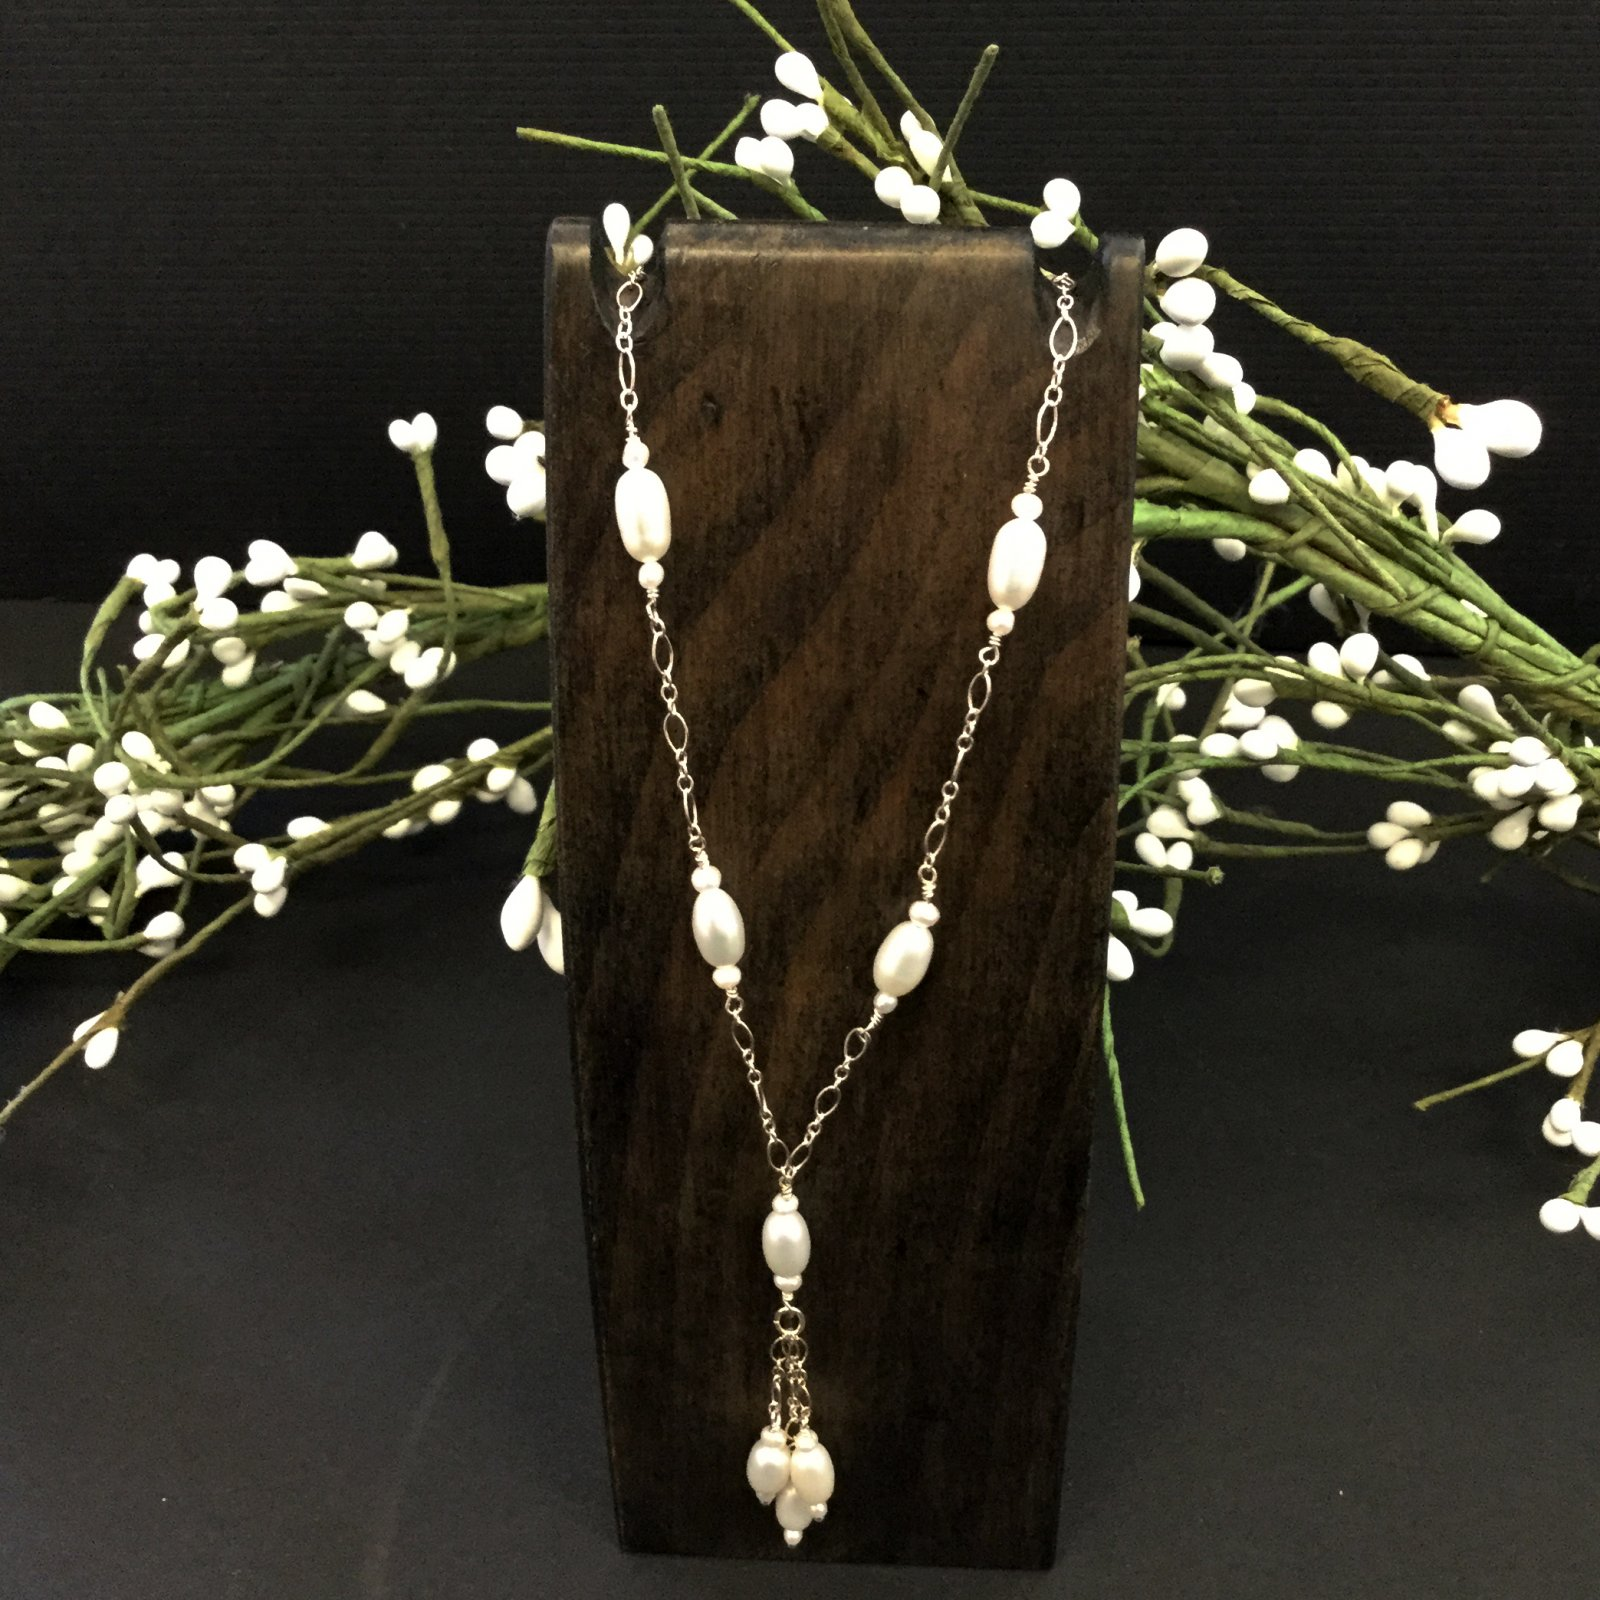 37-22 inch pearl/sterling necklace with drop